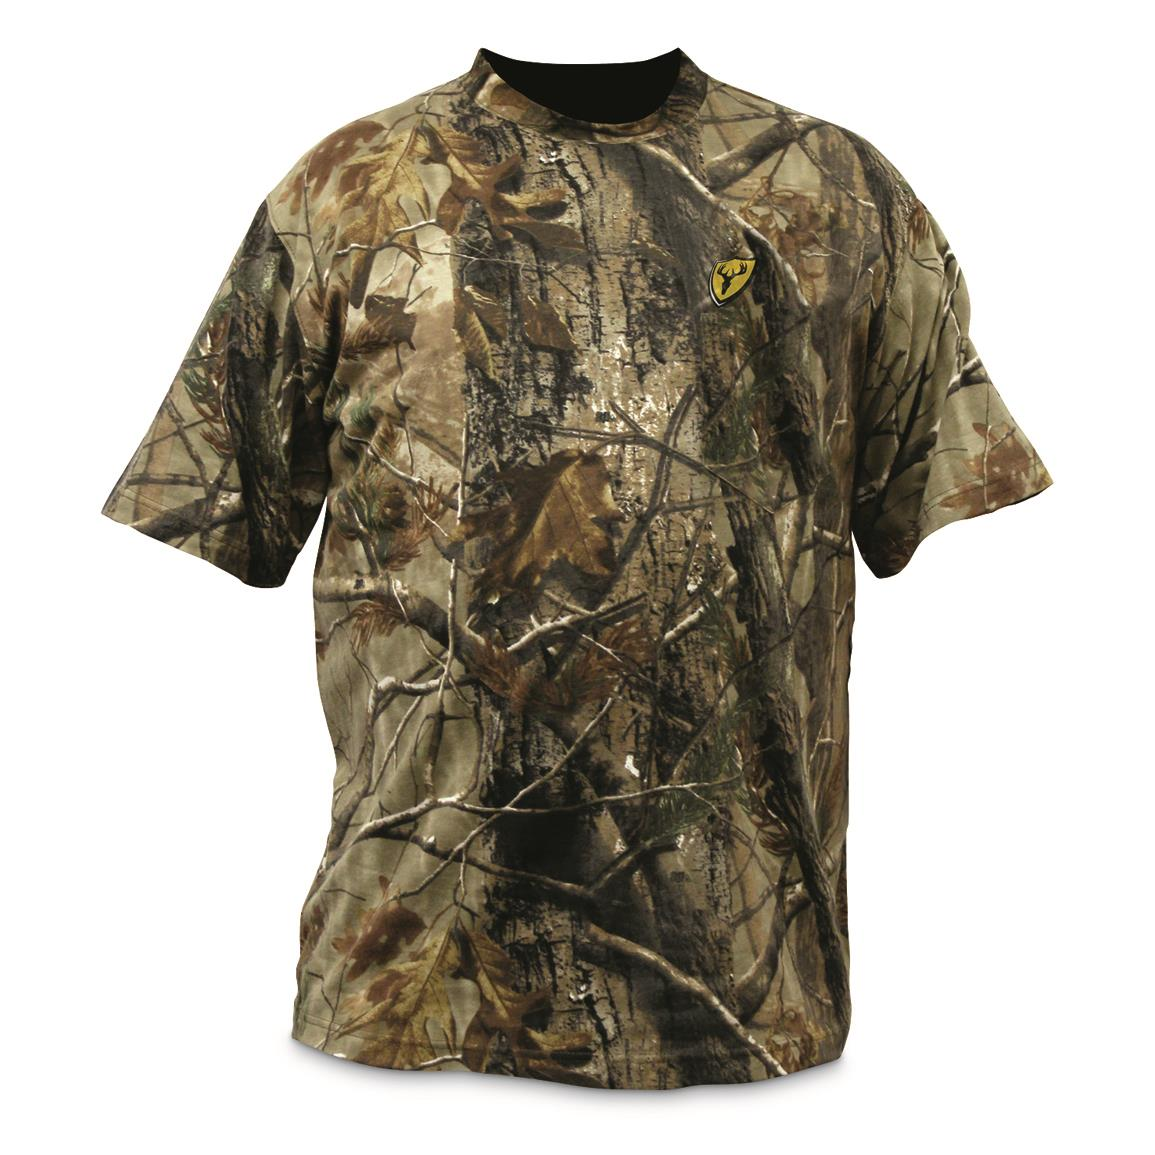 Scentblocker Men's Short-Sleeve T-Shirt, Realtree Edge, Realtree EDGE™